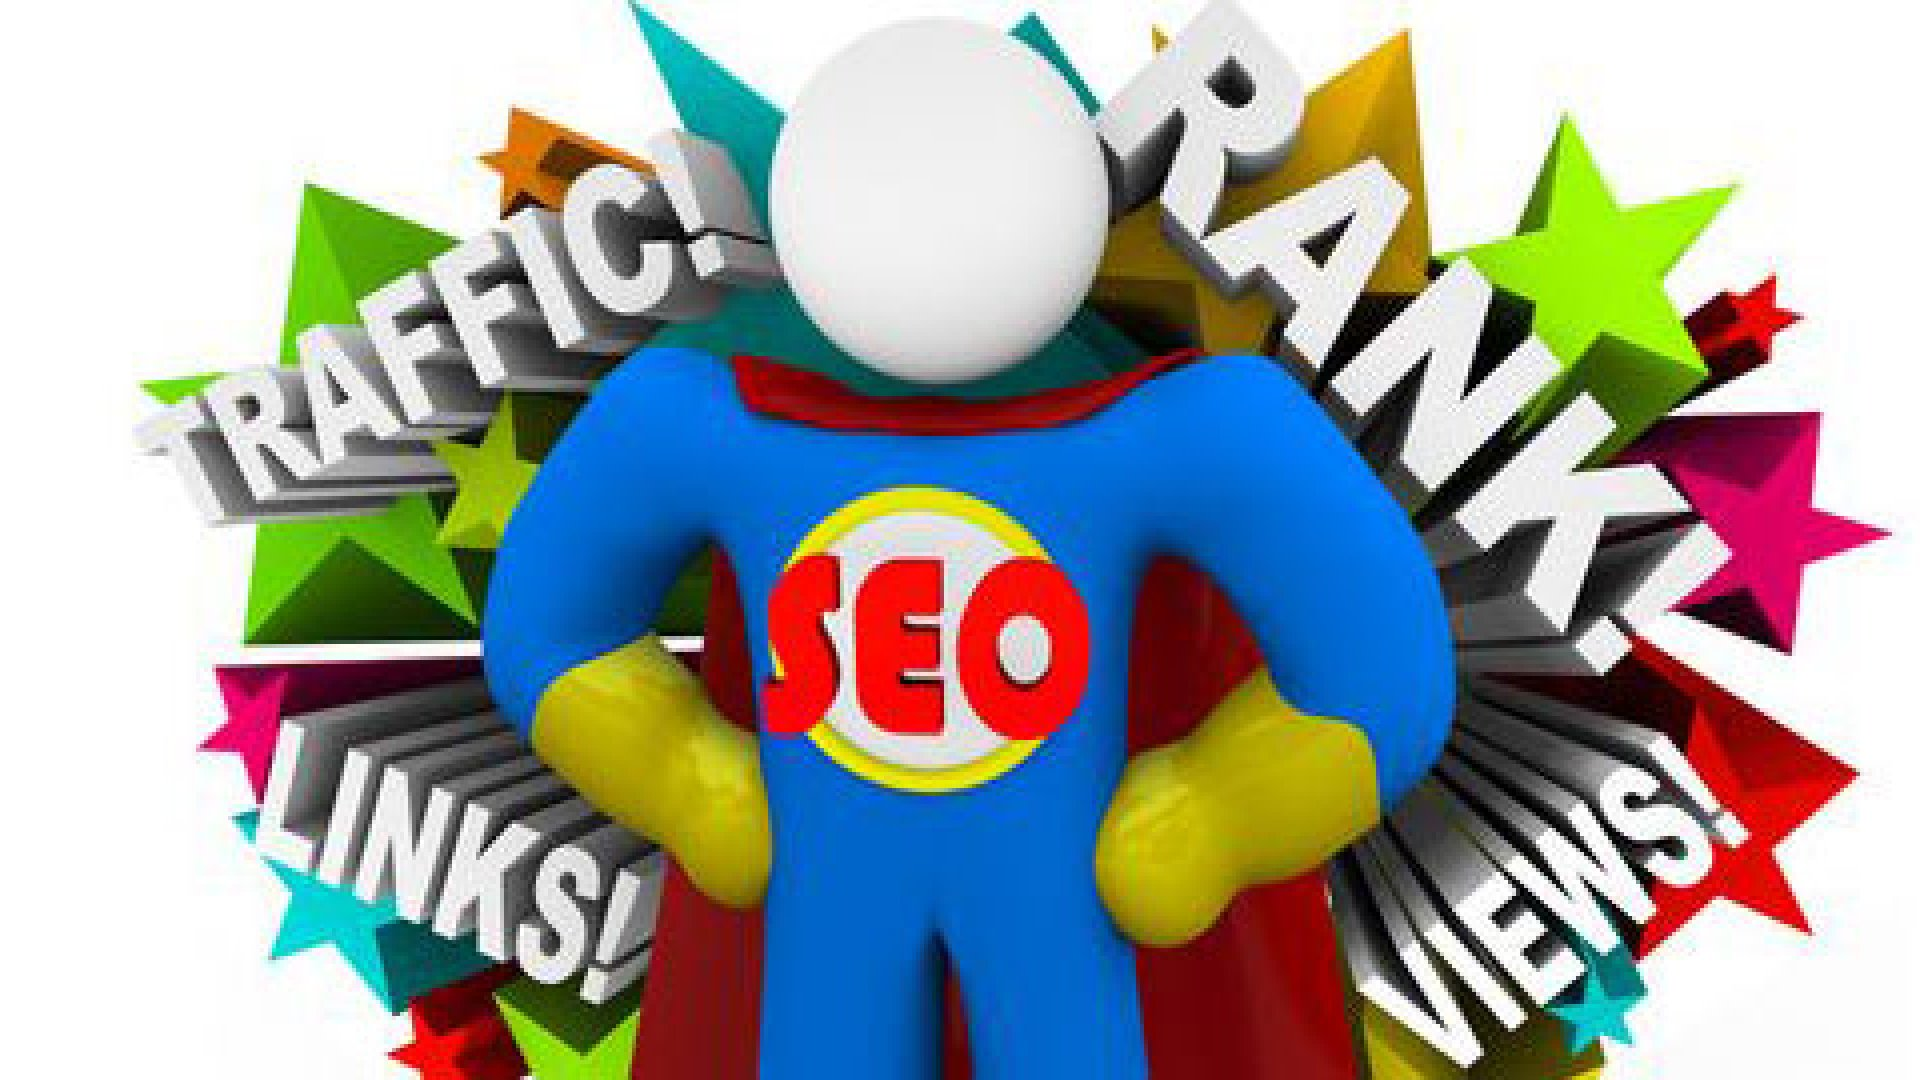 Are you ready to tackle SEO? There are a few core questions you should ask yourself first.